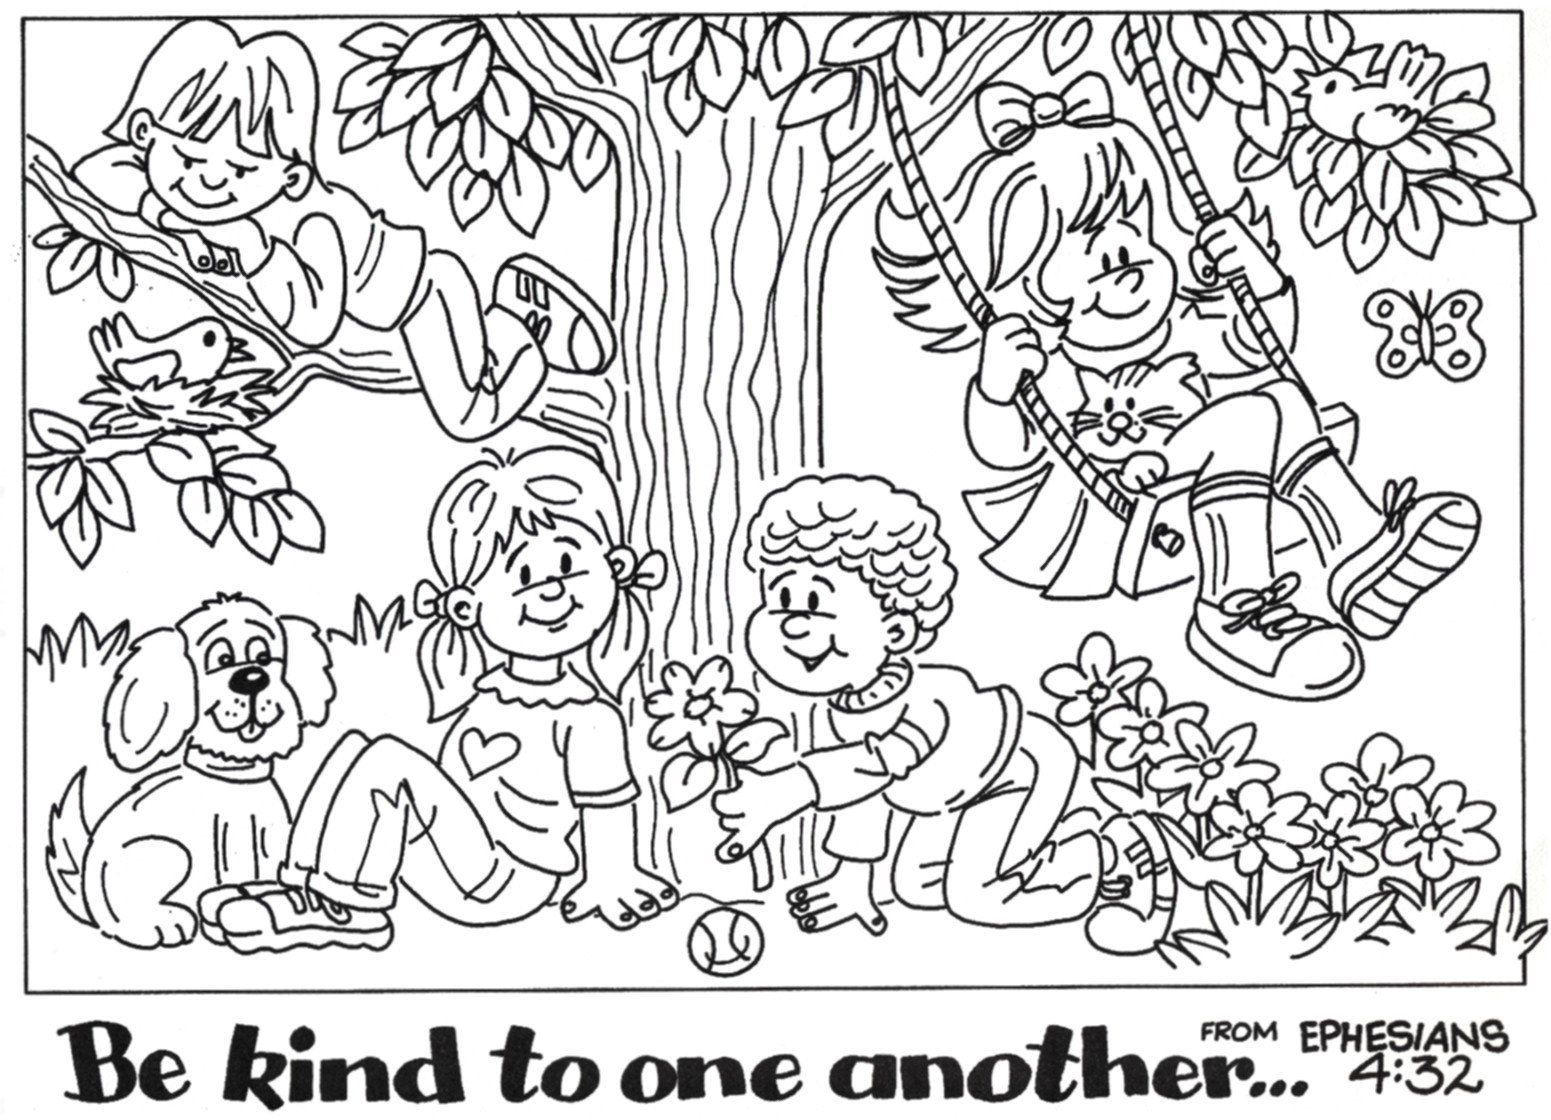 sunday school activities sunday school lessons bible coloring pages printable coloring pages childrens bible bible quotes catholic kids kids